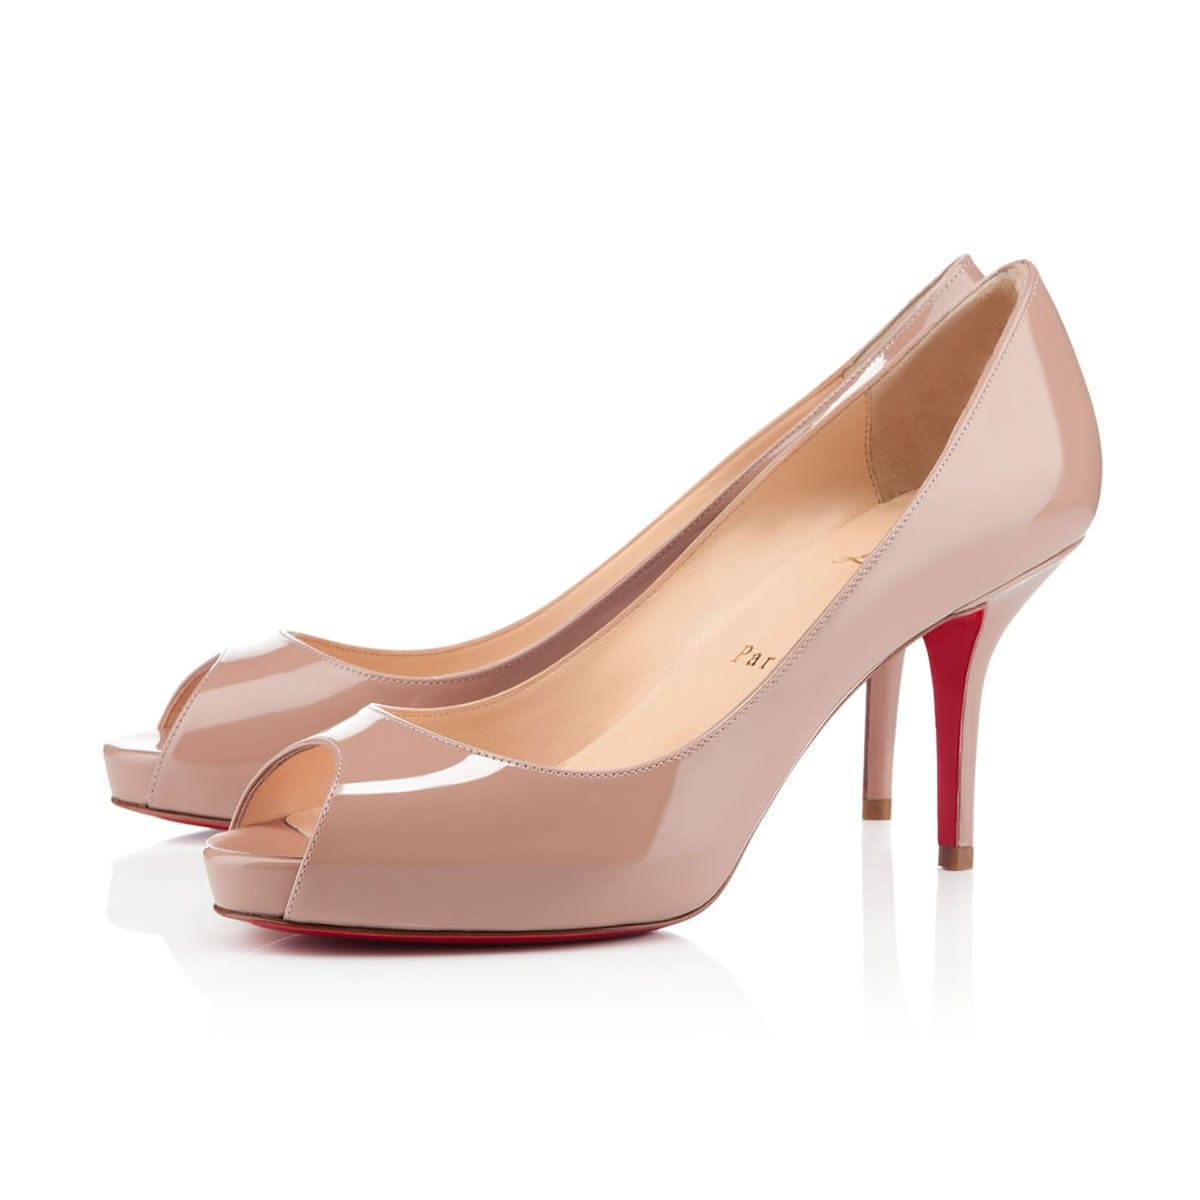 MATER CLAUDE 85 mm, Patent Leather, nude, platforms, womens shoes. Christian  Louboutin ...